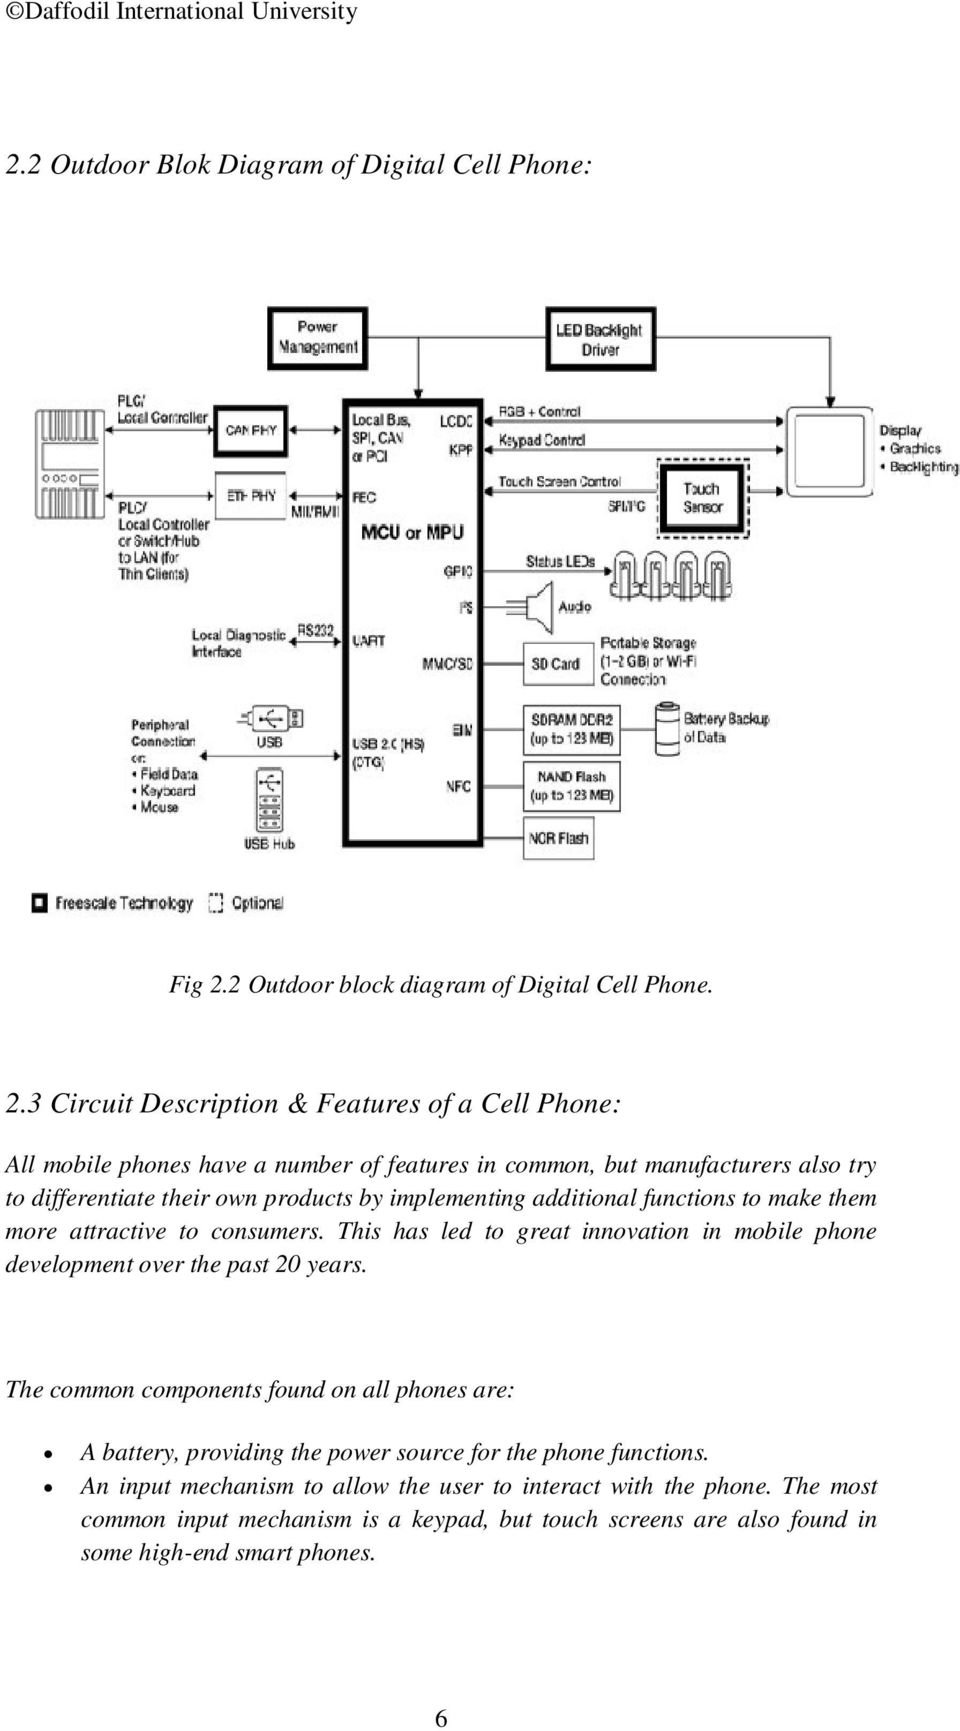 Implementation Of A Digital Cell Phone Pdf Programmable Integrated Circuitcard Music Circuitintegrated Circuits 3 Circuit Description Features All Mobile Phones Have Number